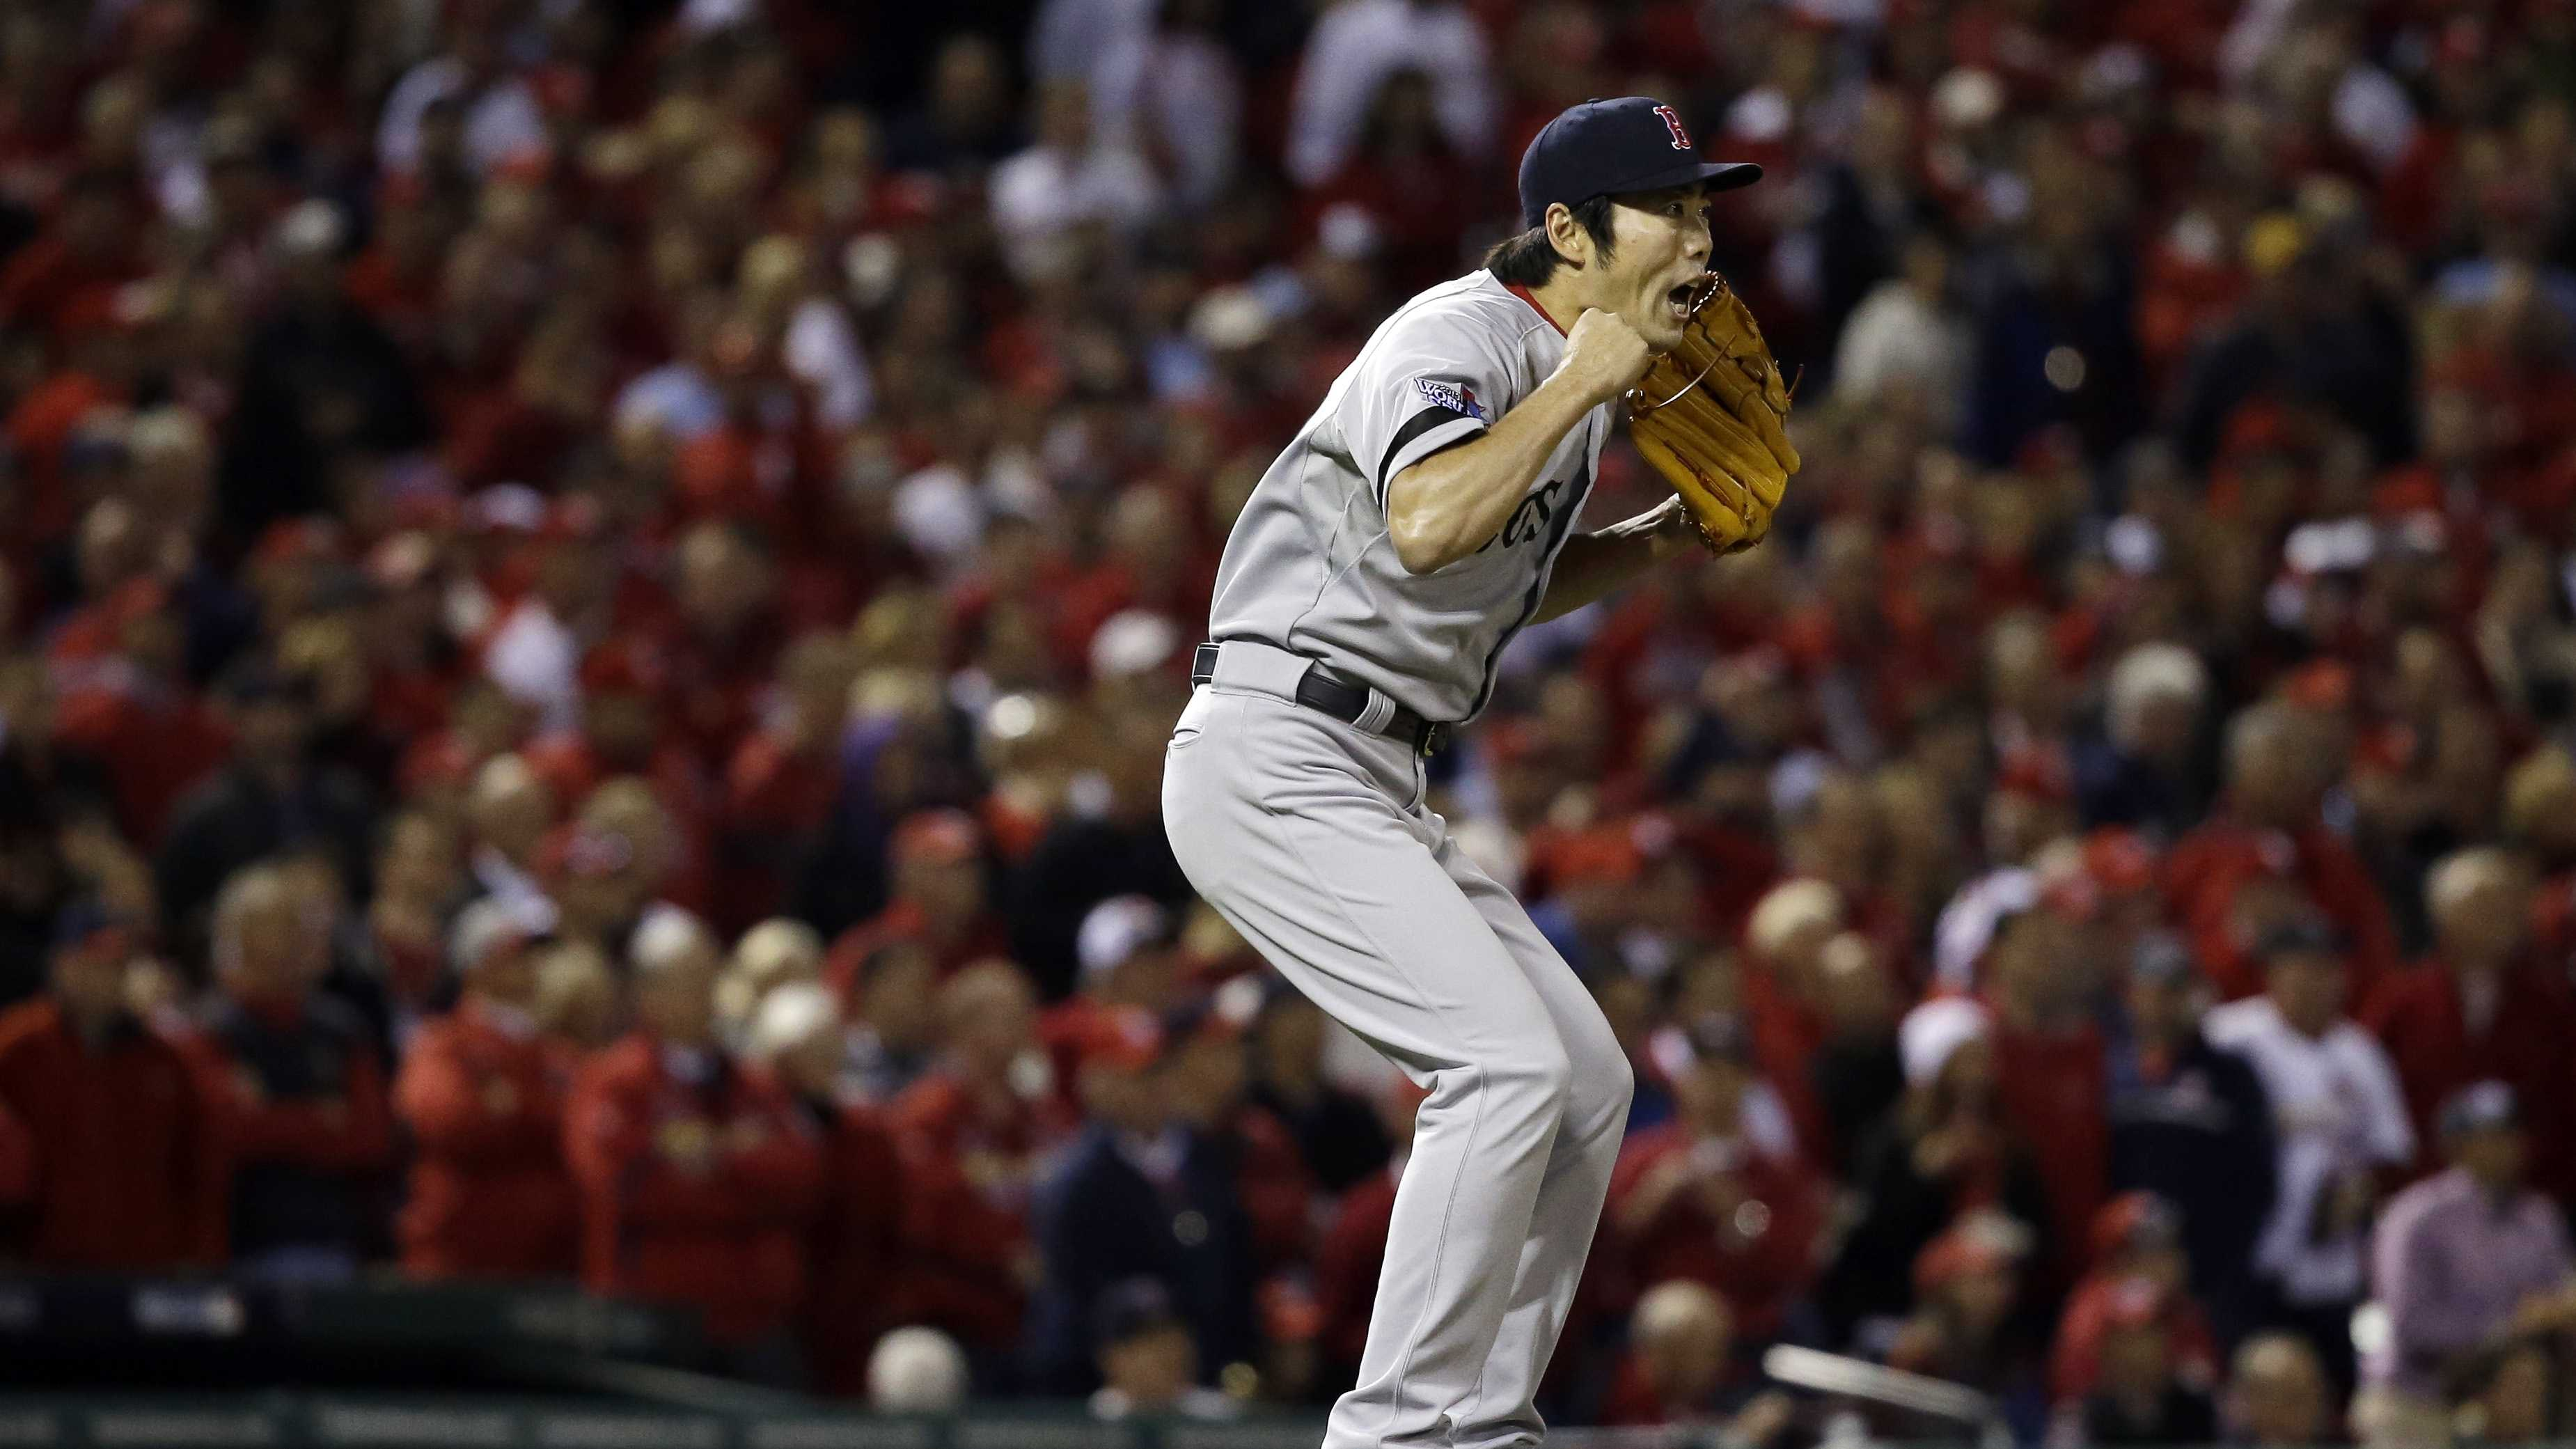 Koji Uehara Jumps after Game 5 final out 1012813